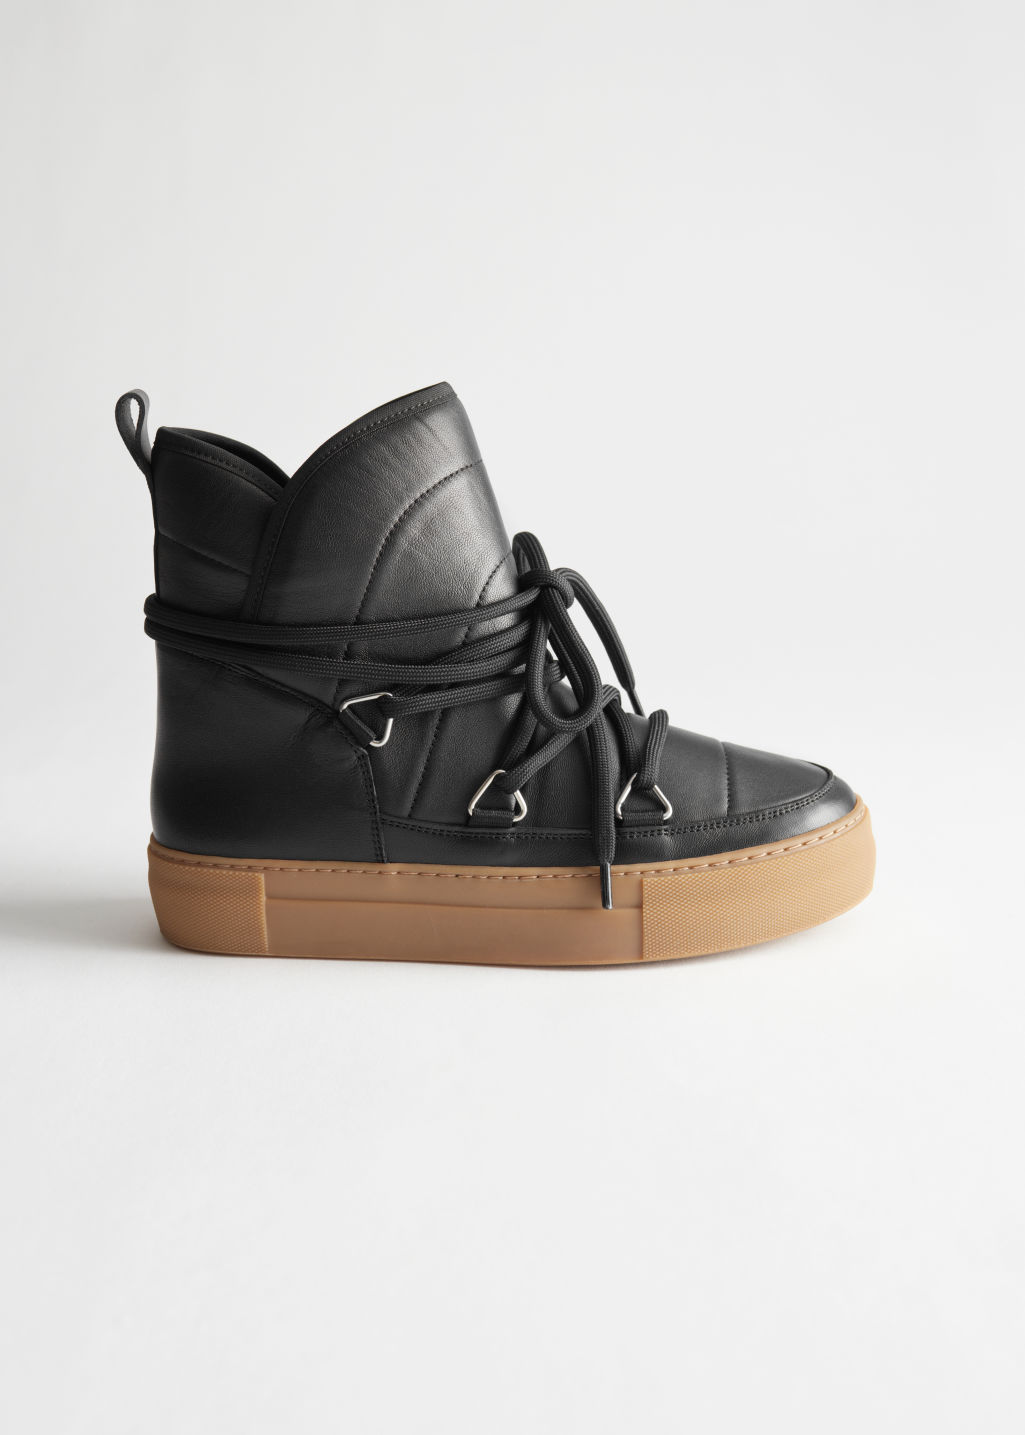 StillLife Side Image of Stories Shearling Lined Suede Snow Boots in Black